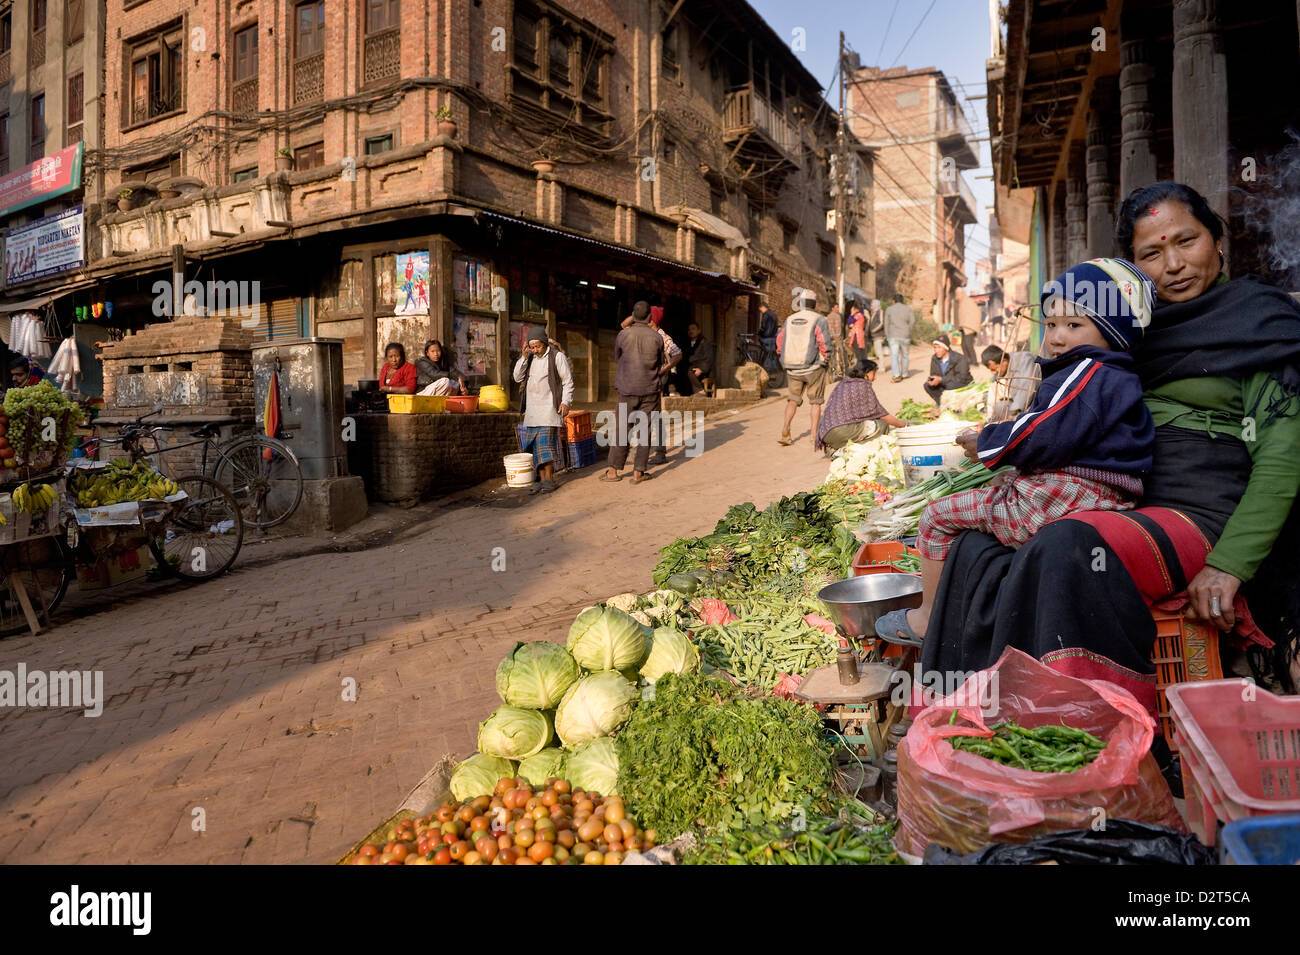 Vegetable seller, Bhaktapur, Nepal, Asia - Stock Image